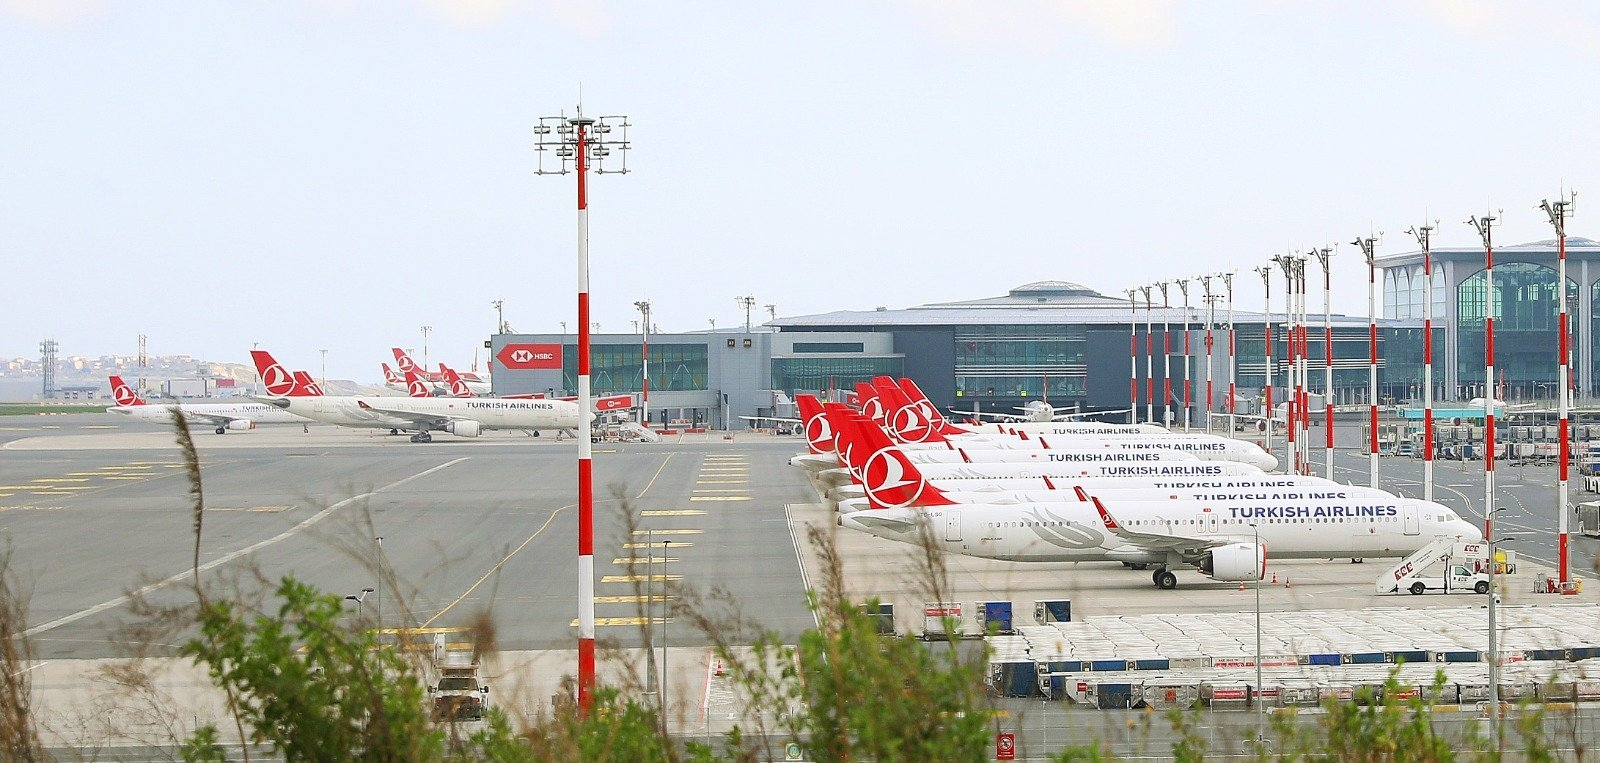 Turkish Airline planes sit on the tarmac at Istanbul Airport during the coronavirus outbreak, Istanbul, Turkey, May 24, 2020. (AA Photo)